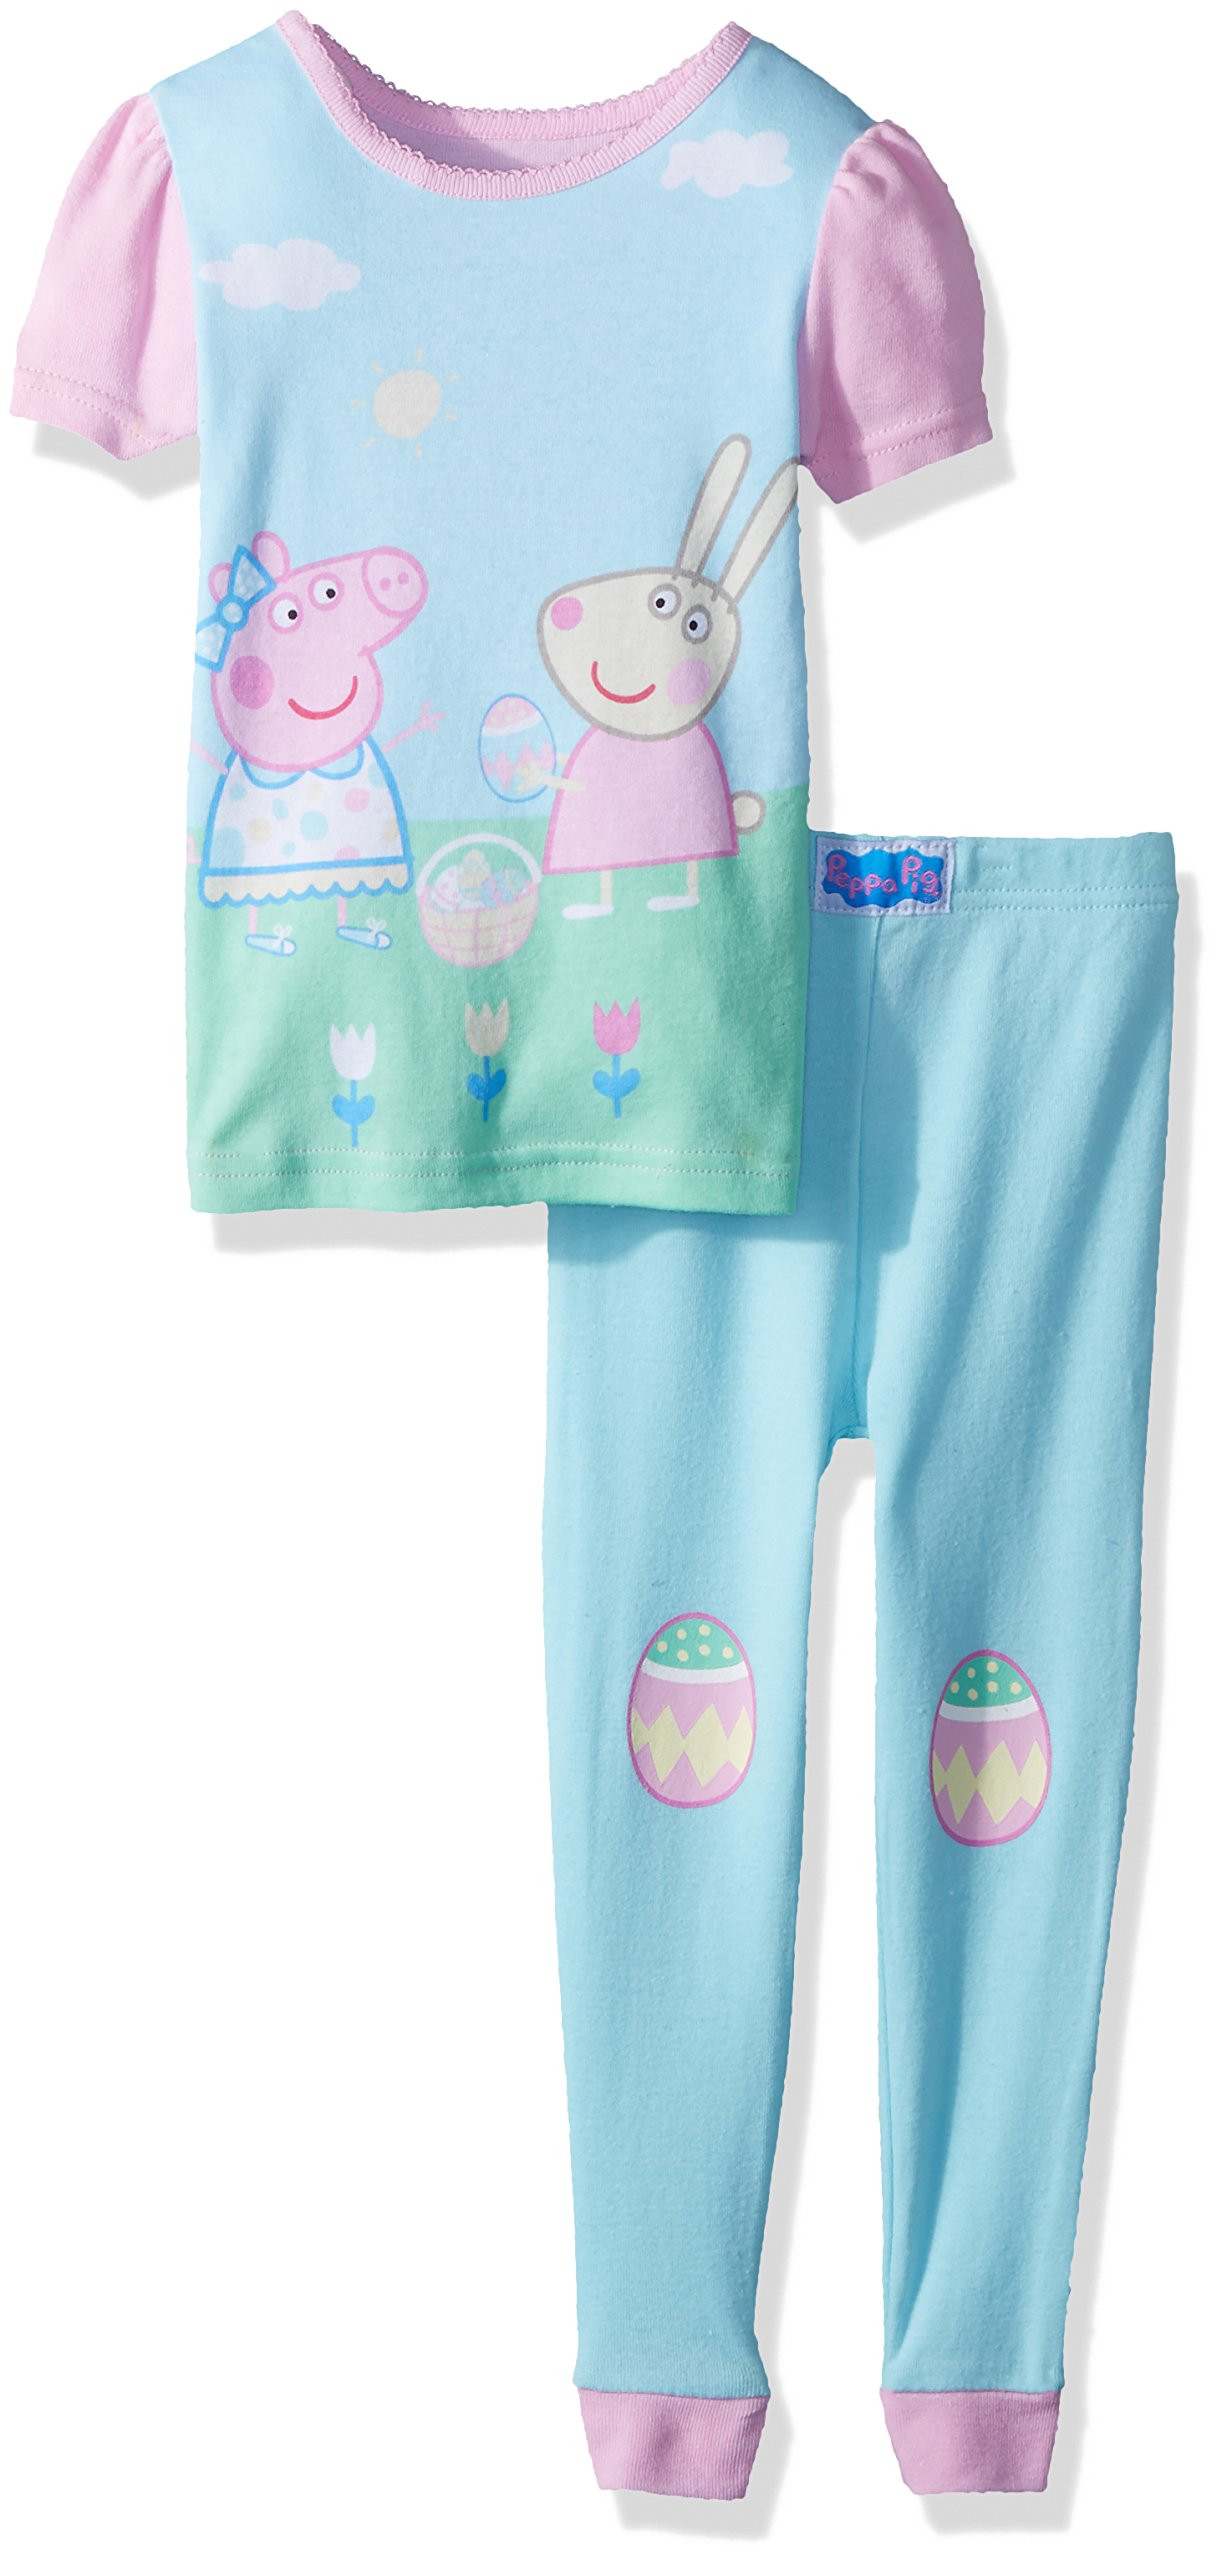 Peppa Pig Toddler Girls' Easter 2 Piece Cotton Set, Turquoise, 2T